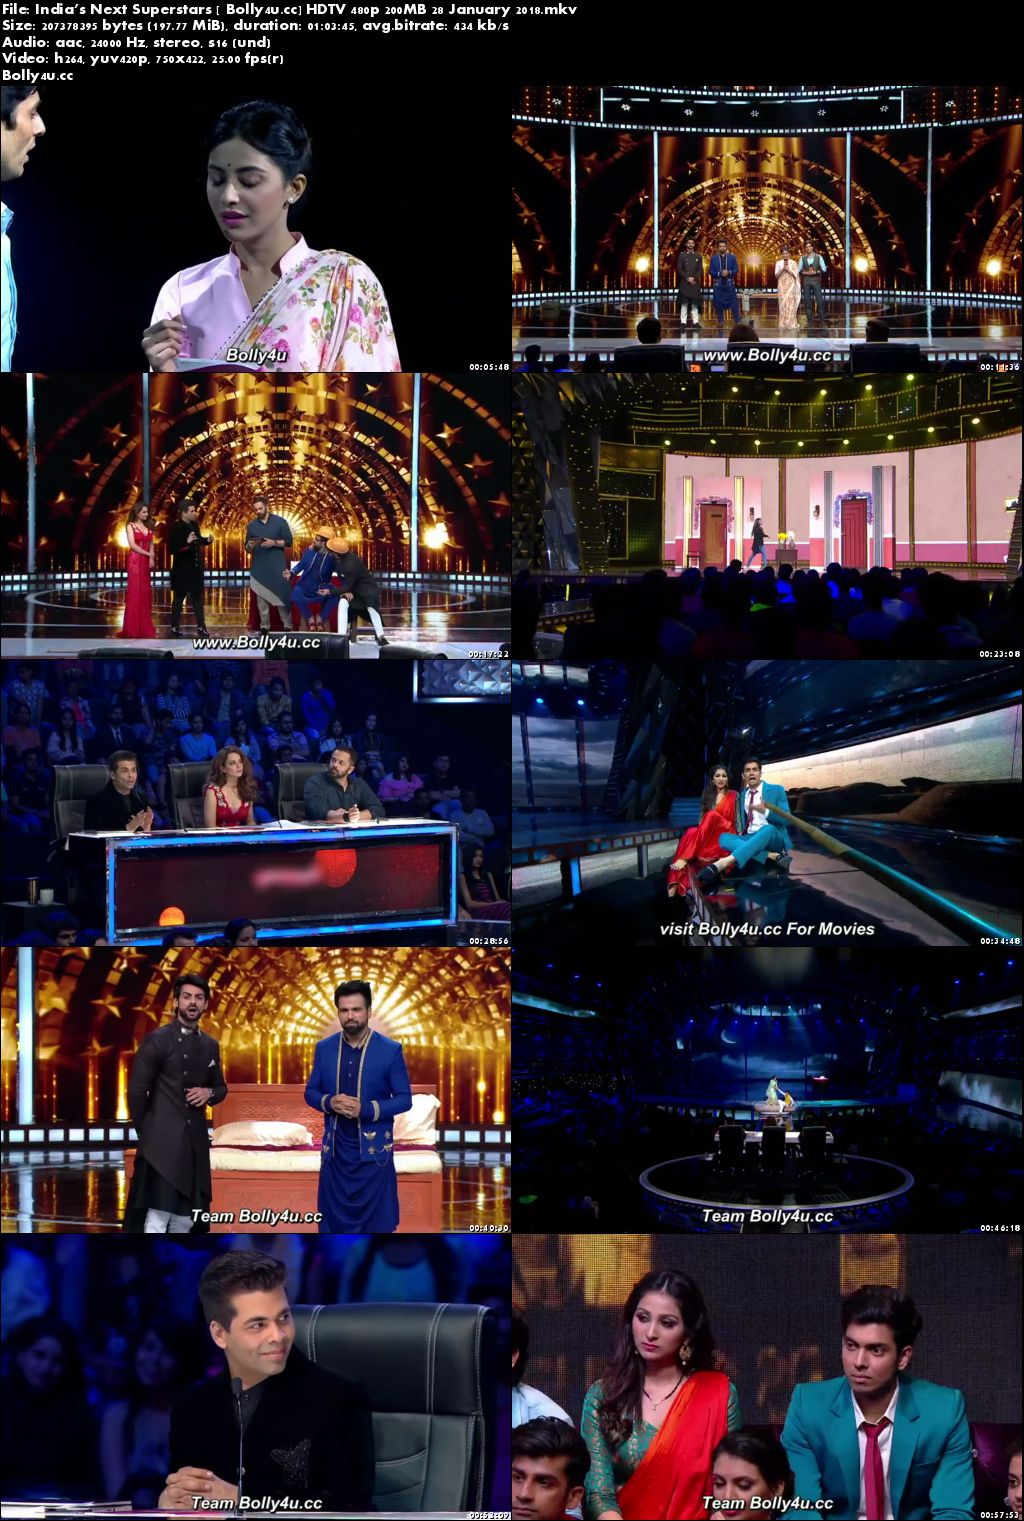 Indias Next Superstars HDTV 480p 200MB 28 January 2018 Download